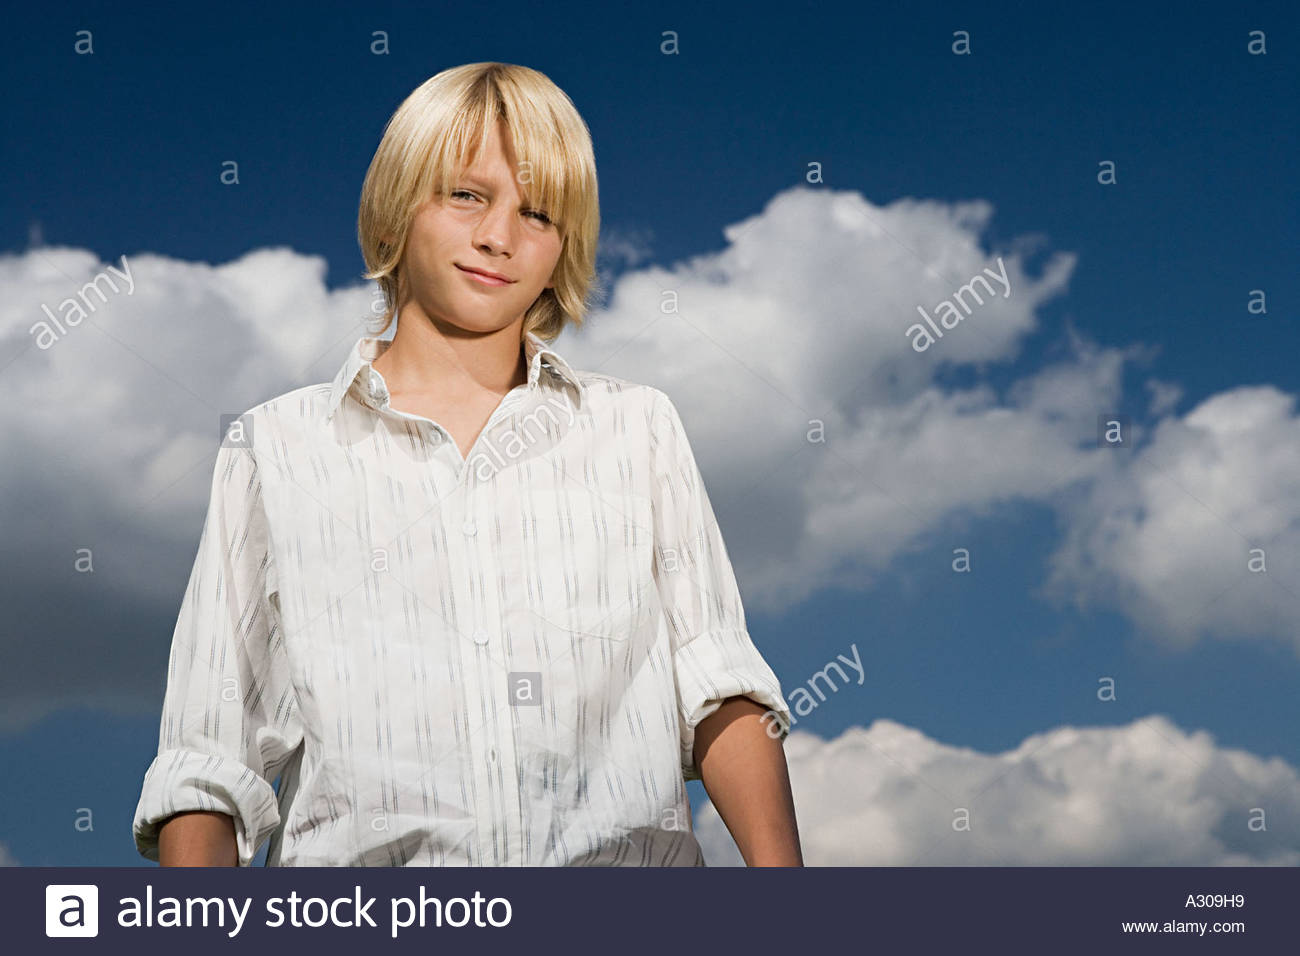 Boy in front of a cloudy sky - Stock Image